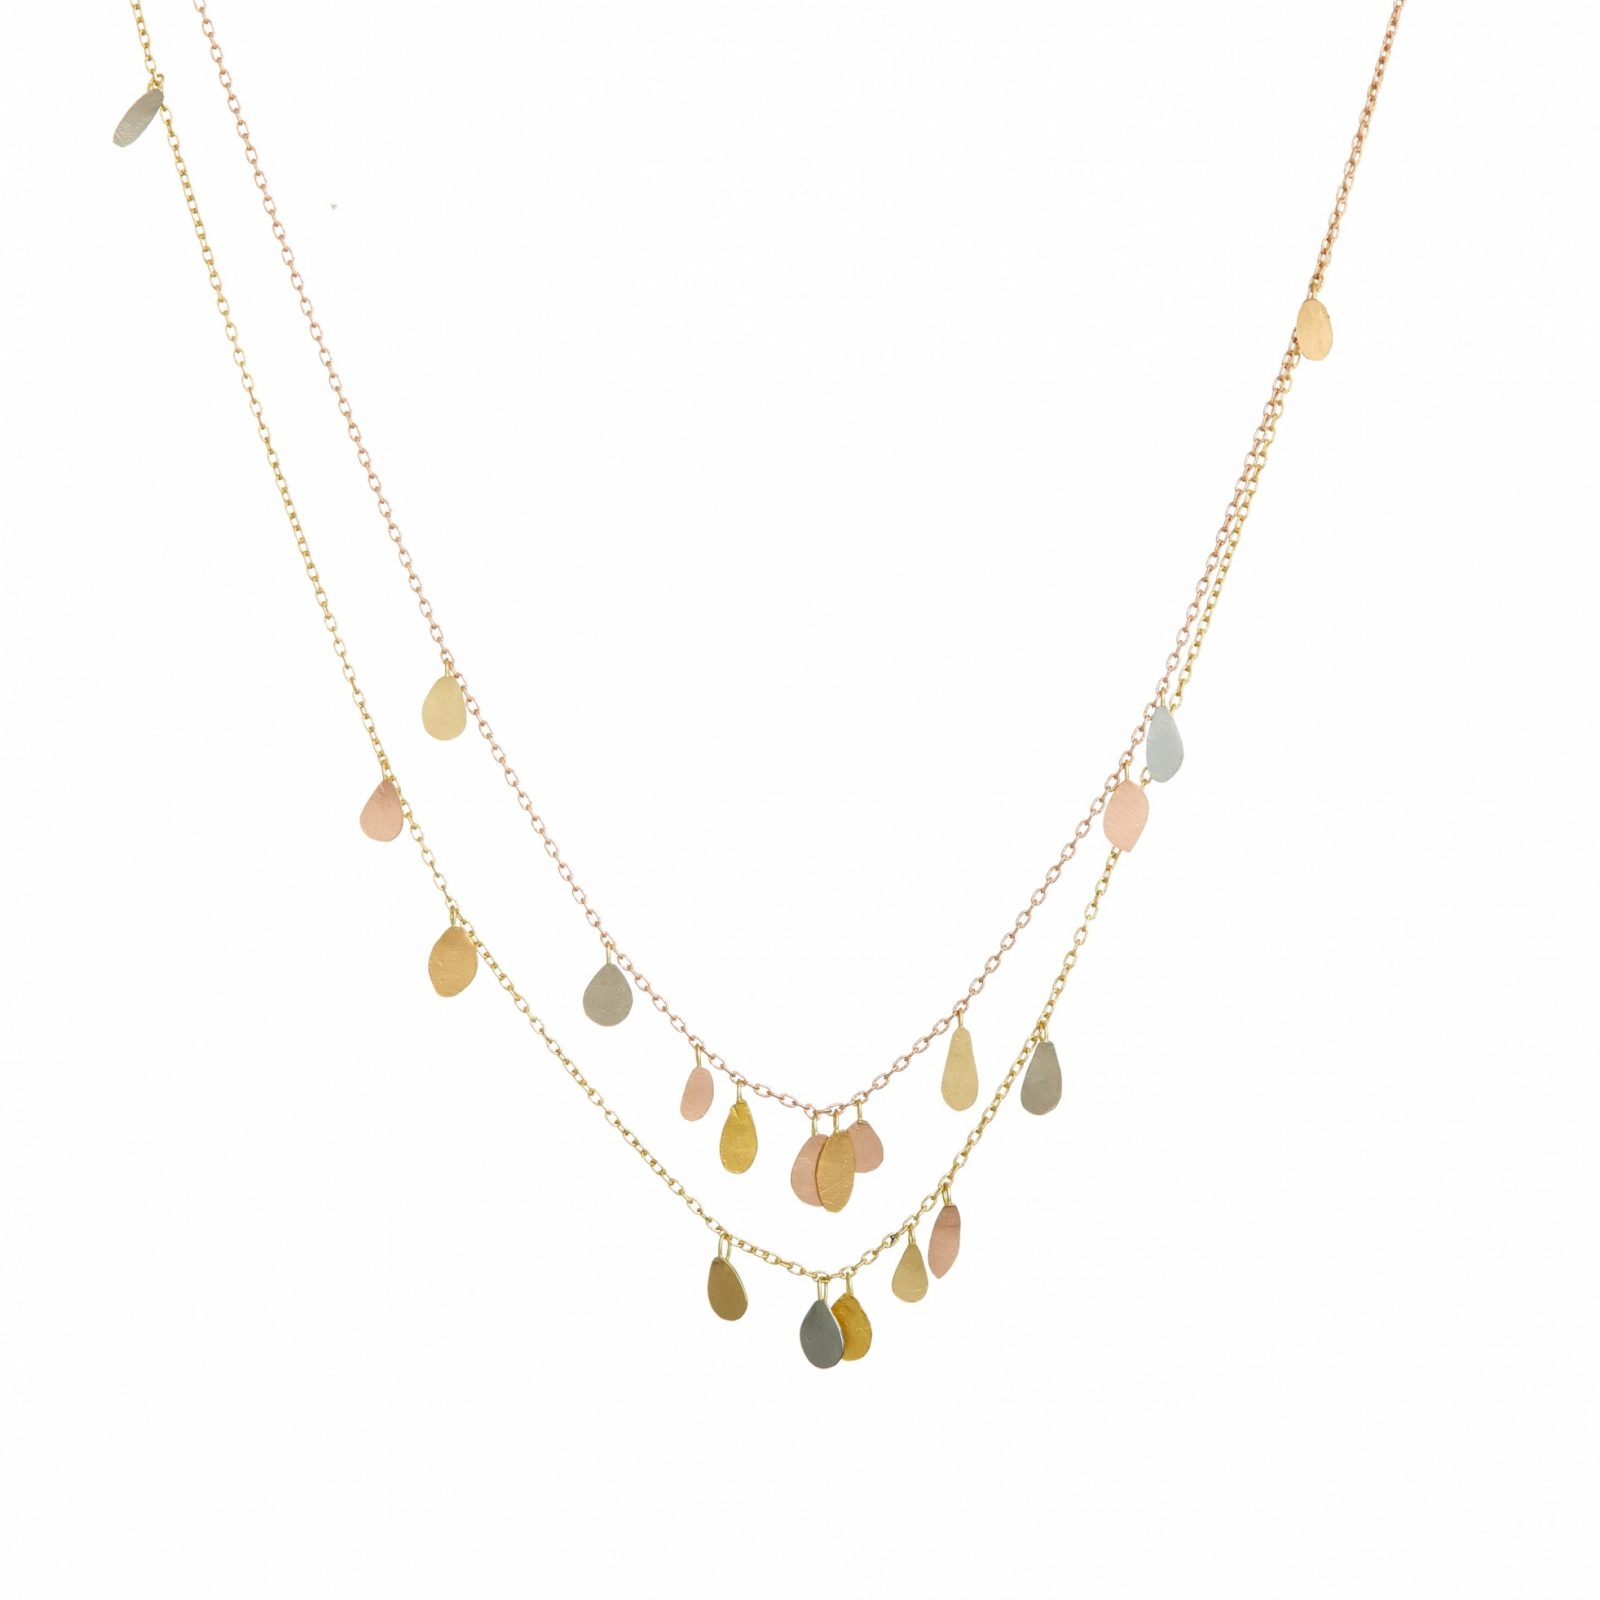 Sia Taylor TN3 Y Double Chain Raindrops Gold Necklace WB